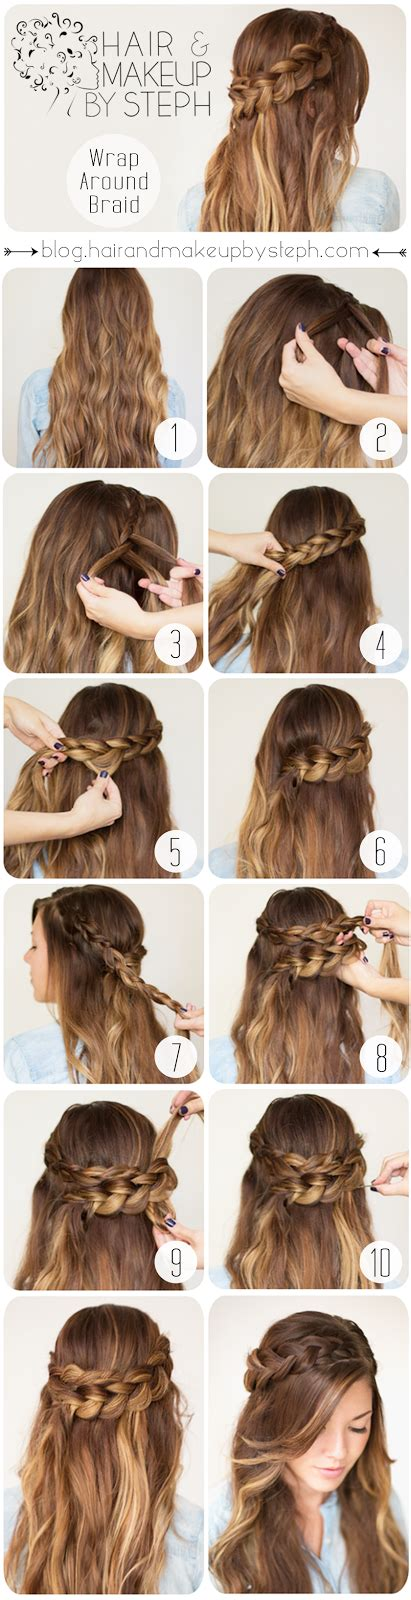 how to wrap hair with weave hair and make up by steph how to wrap around braid